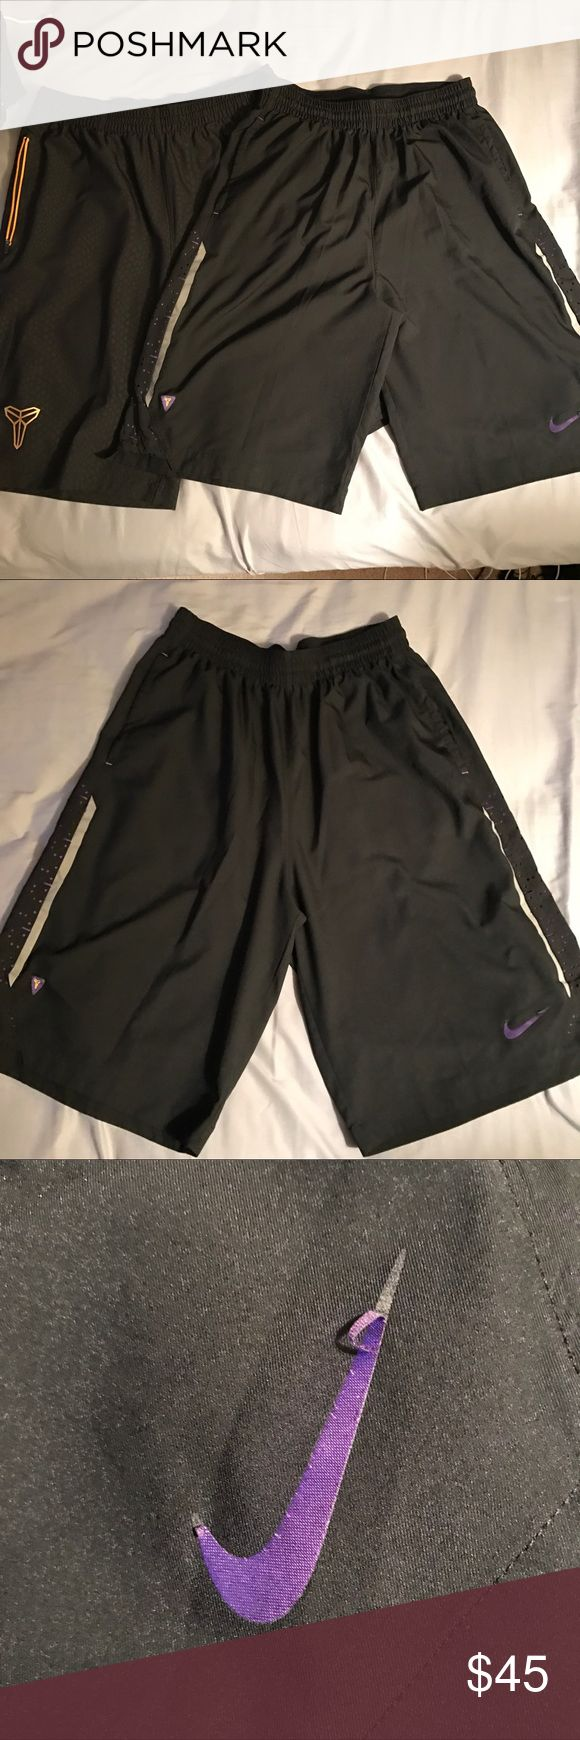 Nike Kobe Shorts bundle size Large Yellow pair is a medium but runs big, like a large. Flaws shown. Please check out my other posts. I offer 10% off bundled items. Nike Shorts Athletic